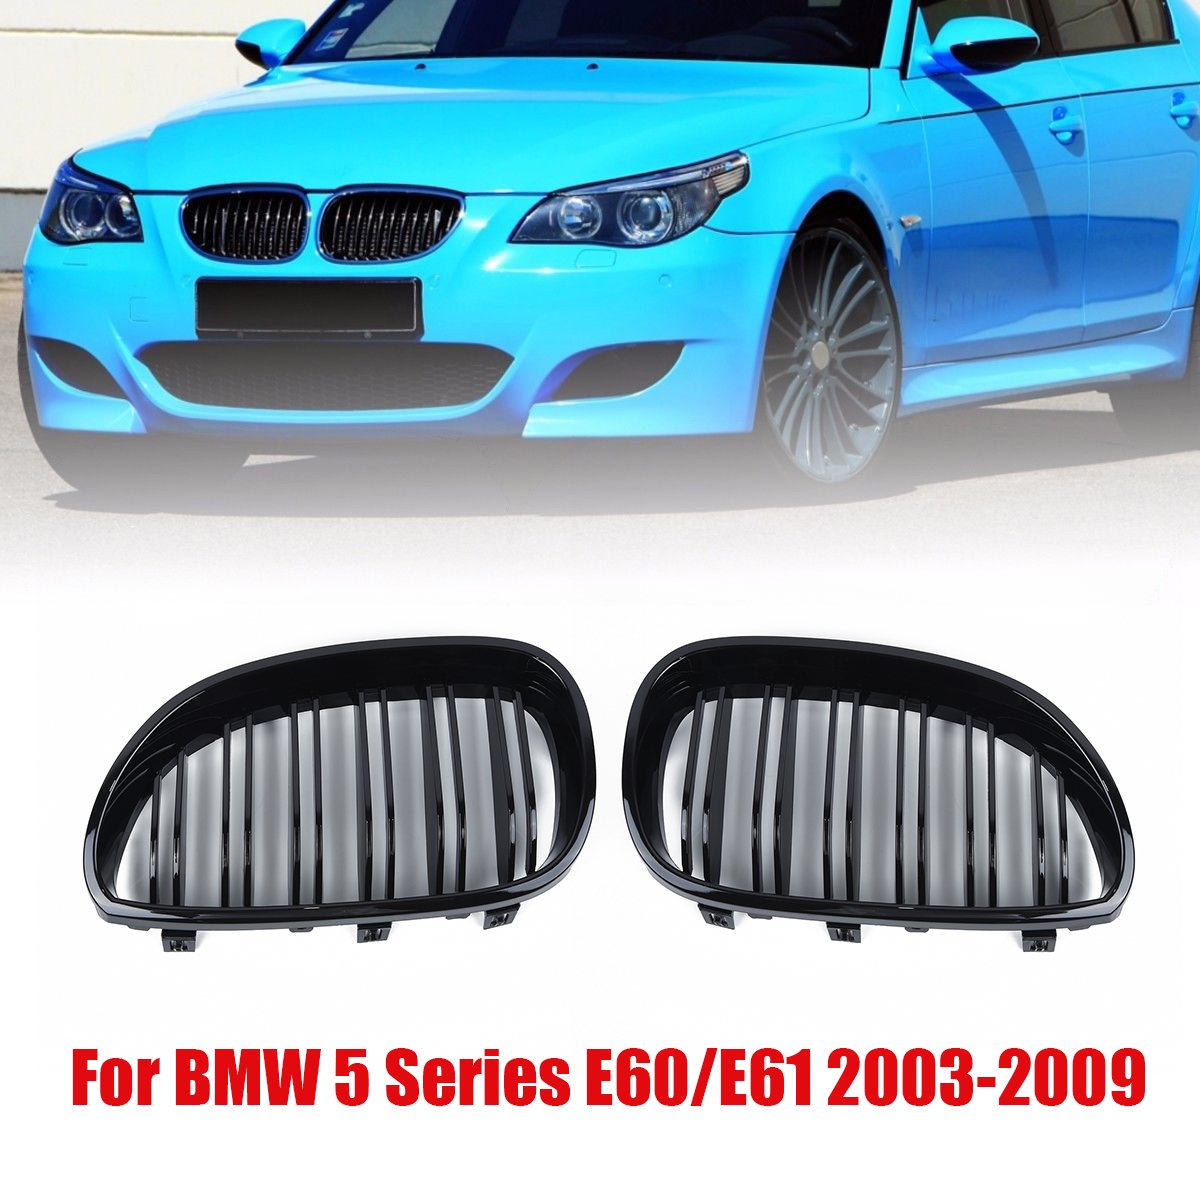 Glossy Black Car Front Bumper Kidney Grill For <font><b>BMW</b></font> E60 <font><b>E61</b></font> 5 SERIES 2003-2010 image